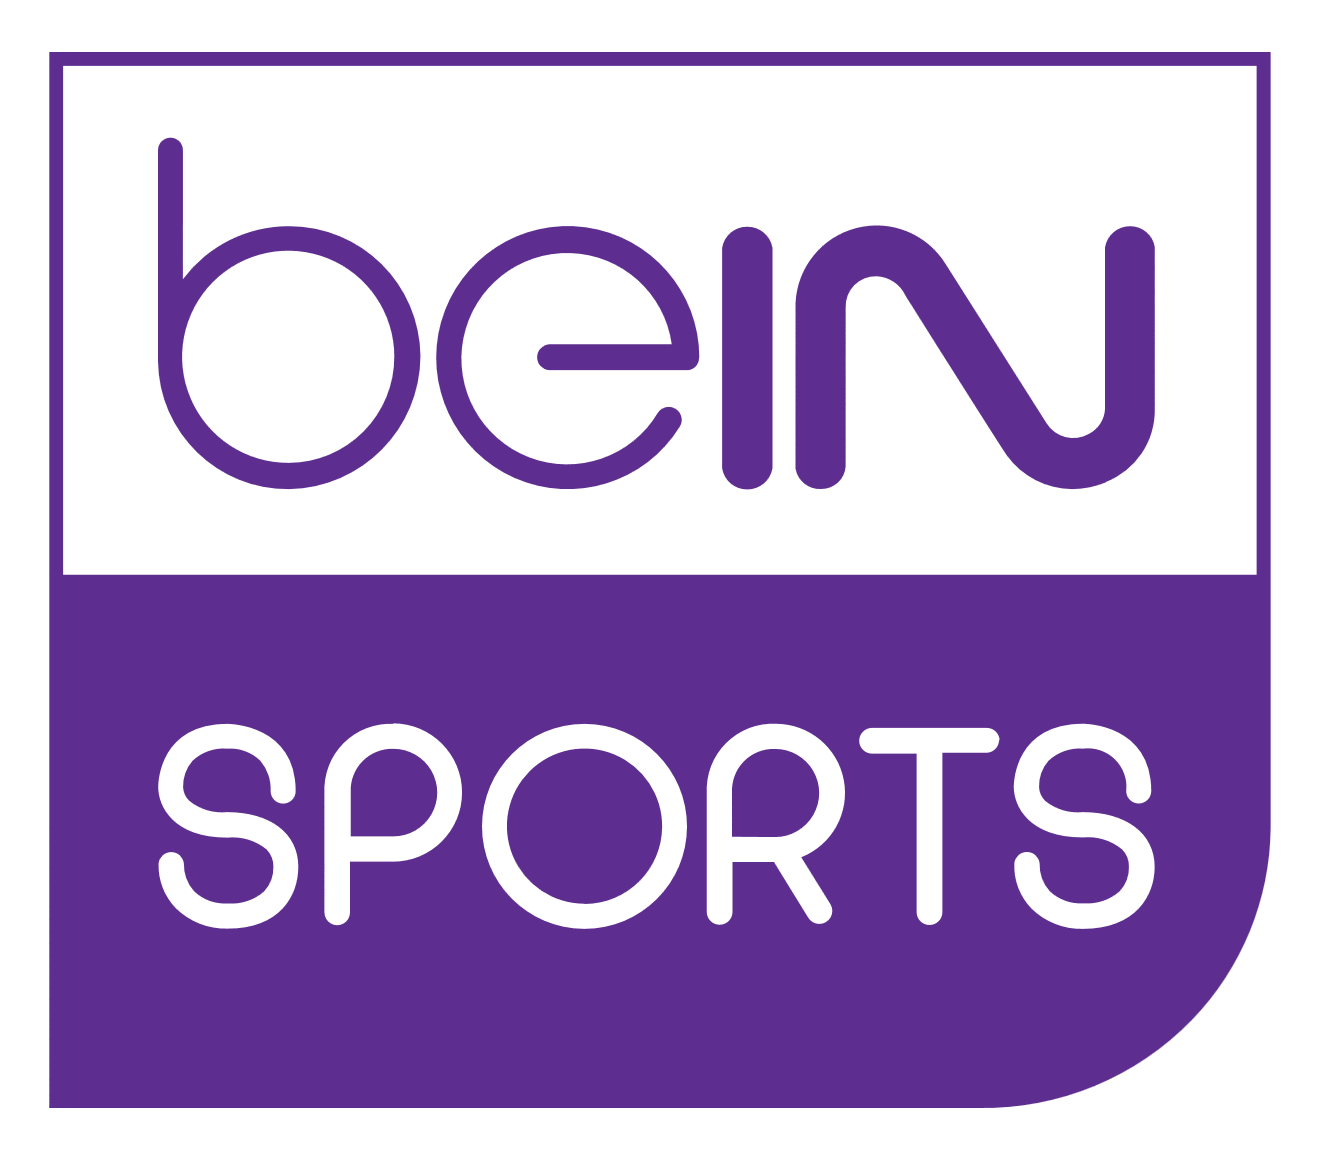 All Bein Sport Channels Frequencies - 2018 Fréquence Nilesat Astra Hotbird TV Frequency